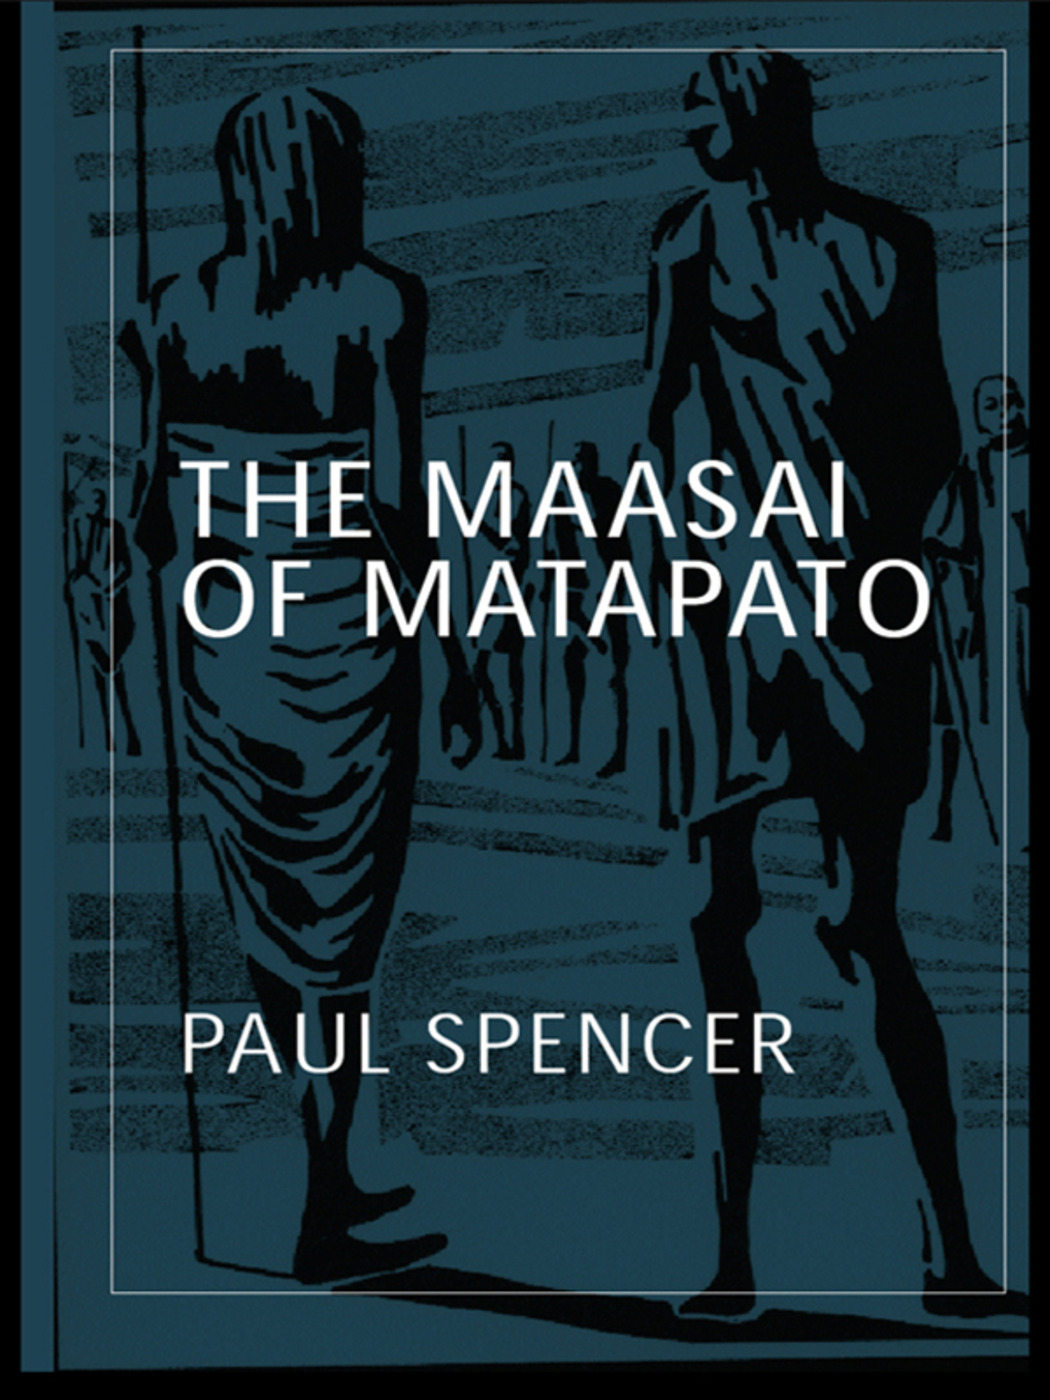 The Maasai of Matapato: A Study of Rituals of Rebellion book cover